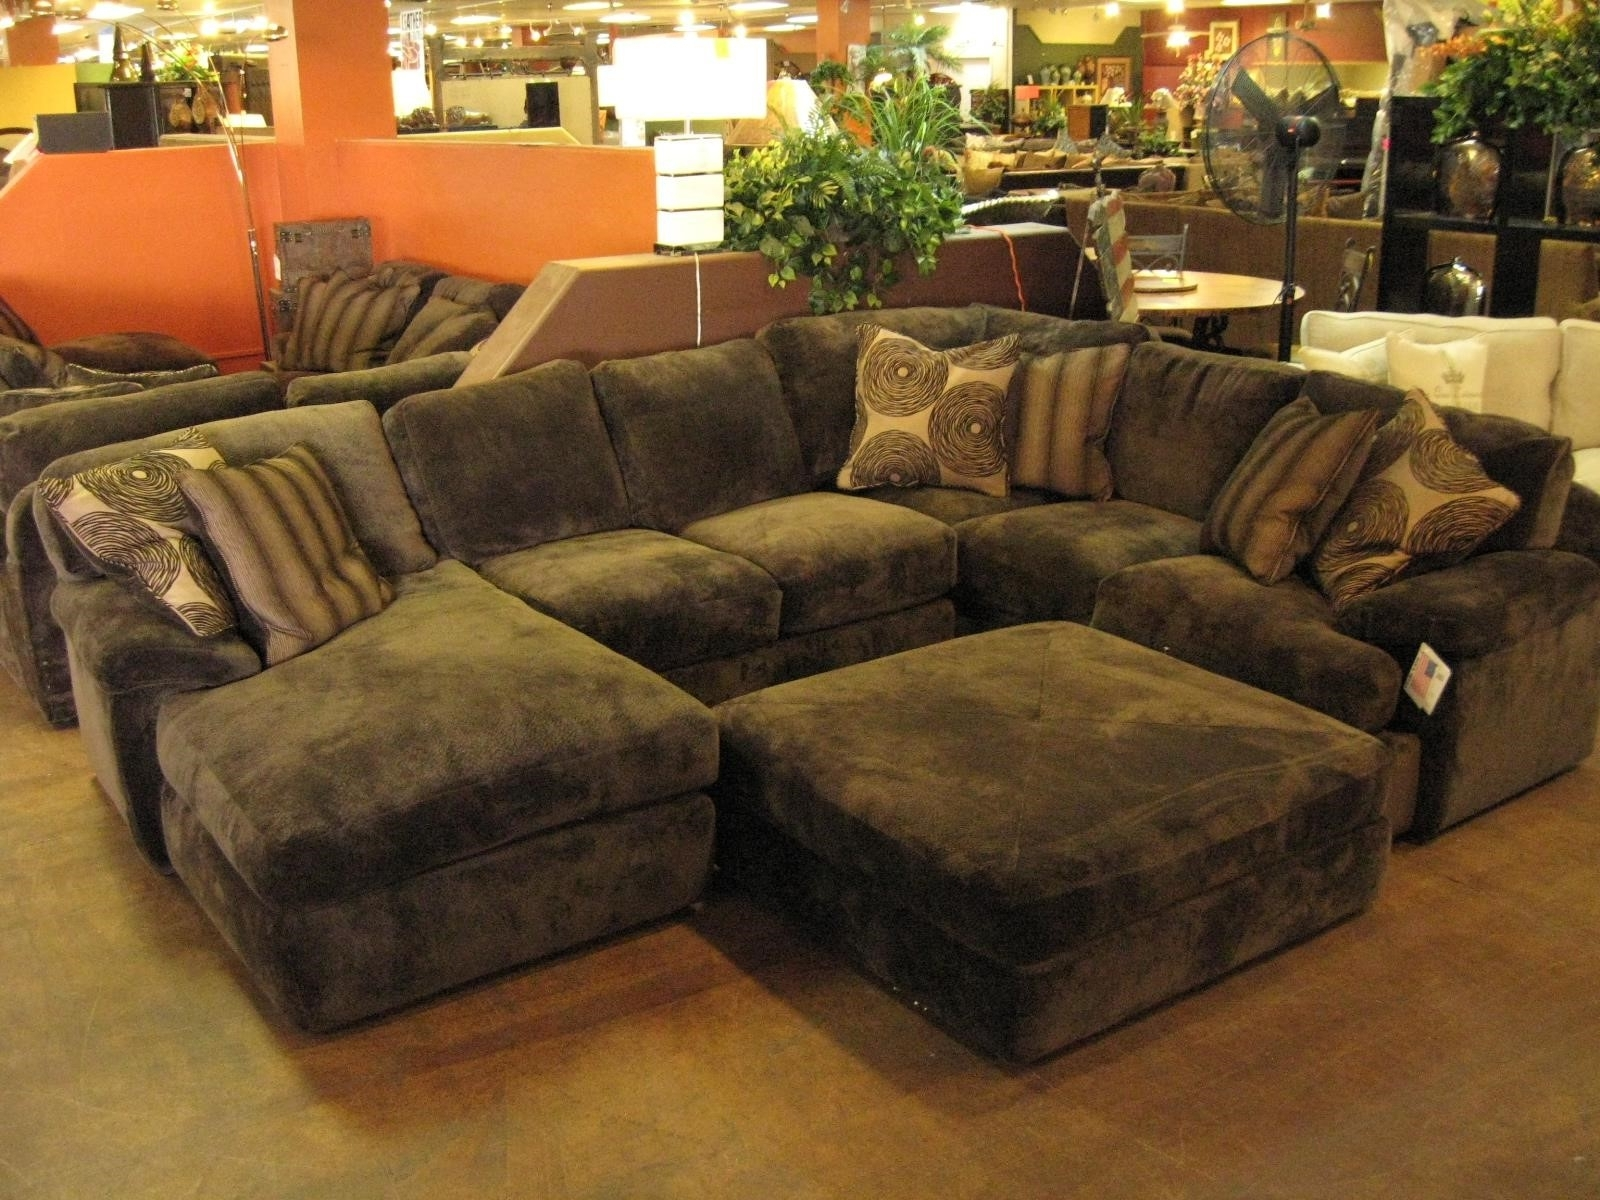 Sectional Sofas With Oversized Ottoman Within Latest Large Sectional Sofa With Ottoman – Visionexchange (View 4 of 15)